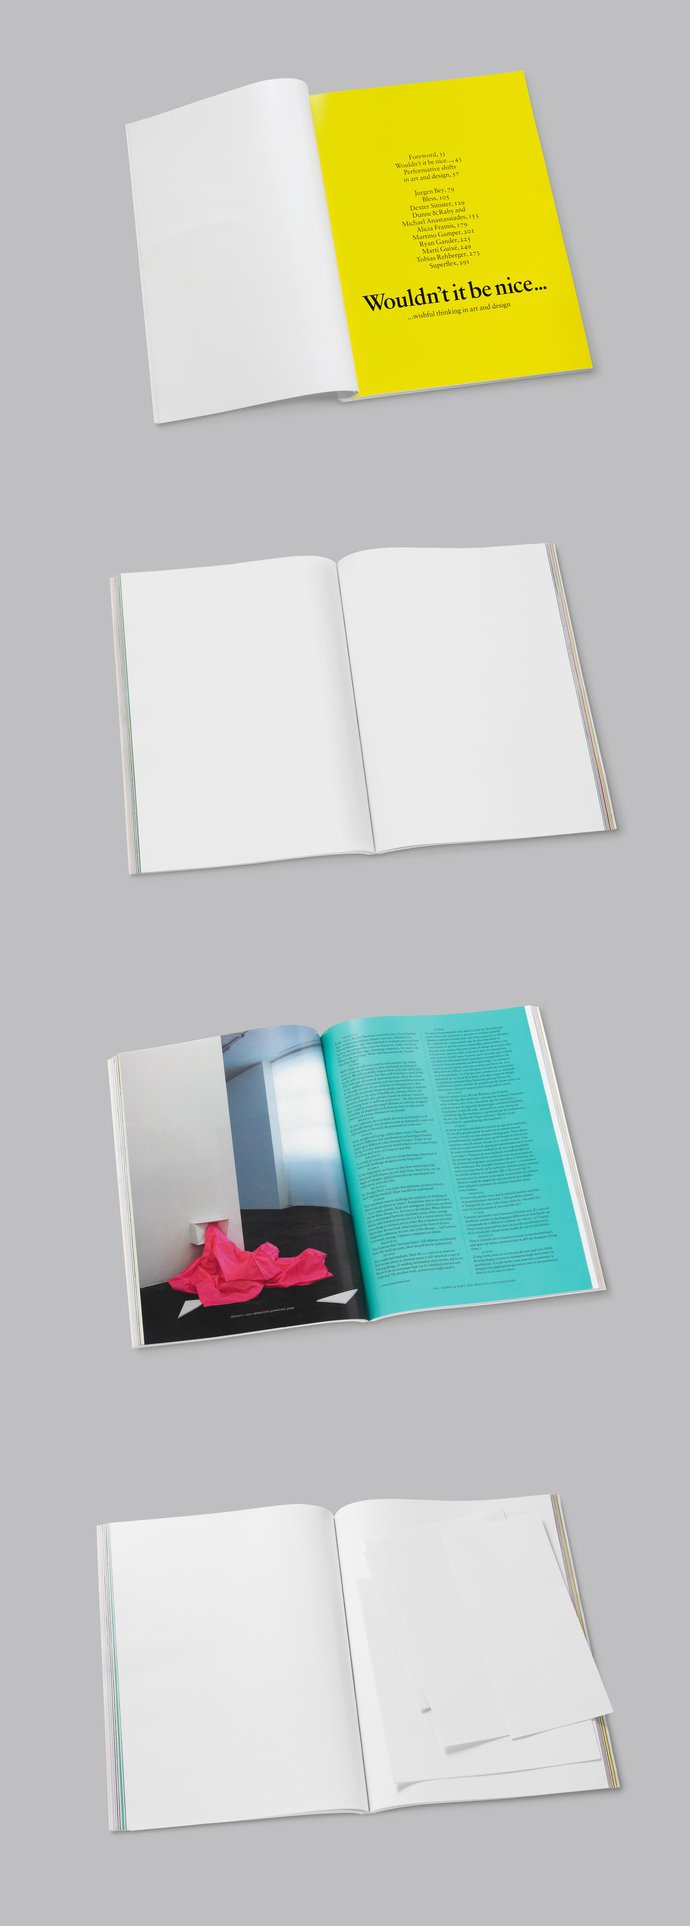 Centre d'Art Contemporain, Geneva – Wouldn't it be nice…, 2008 (Publication), image 4